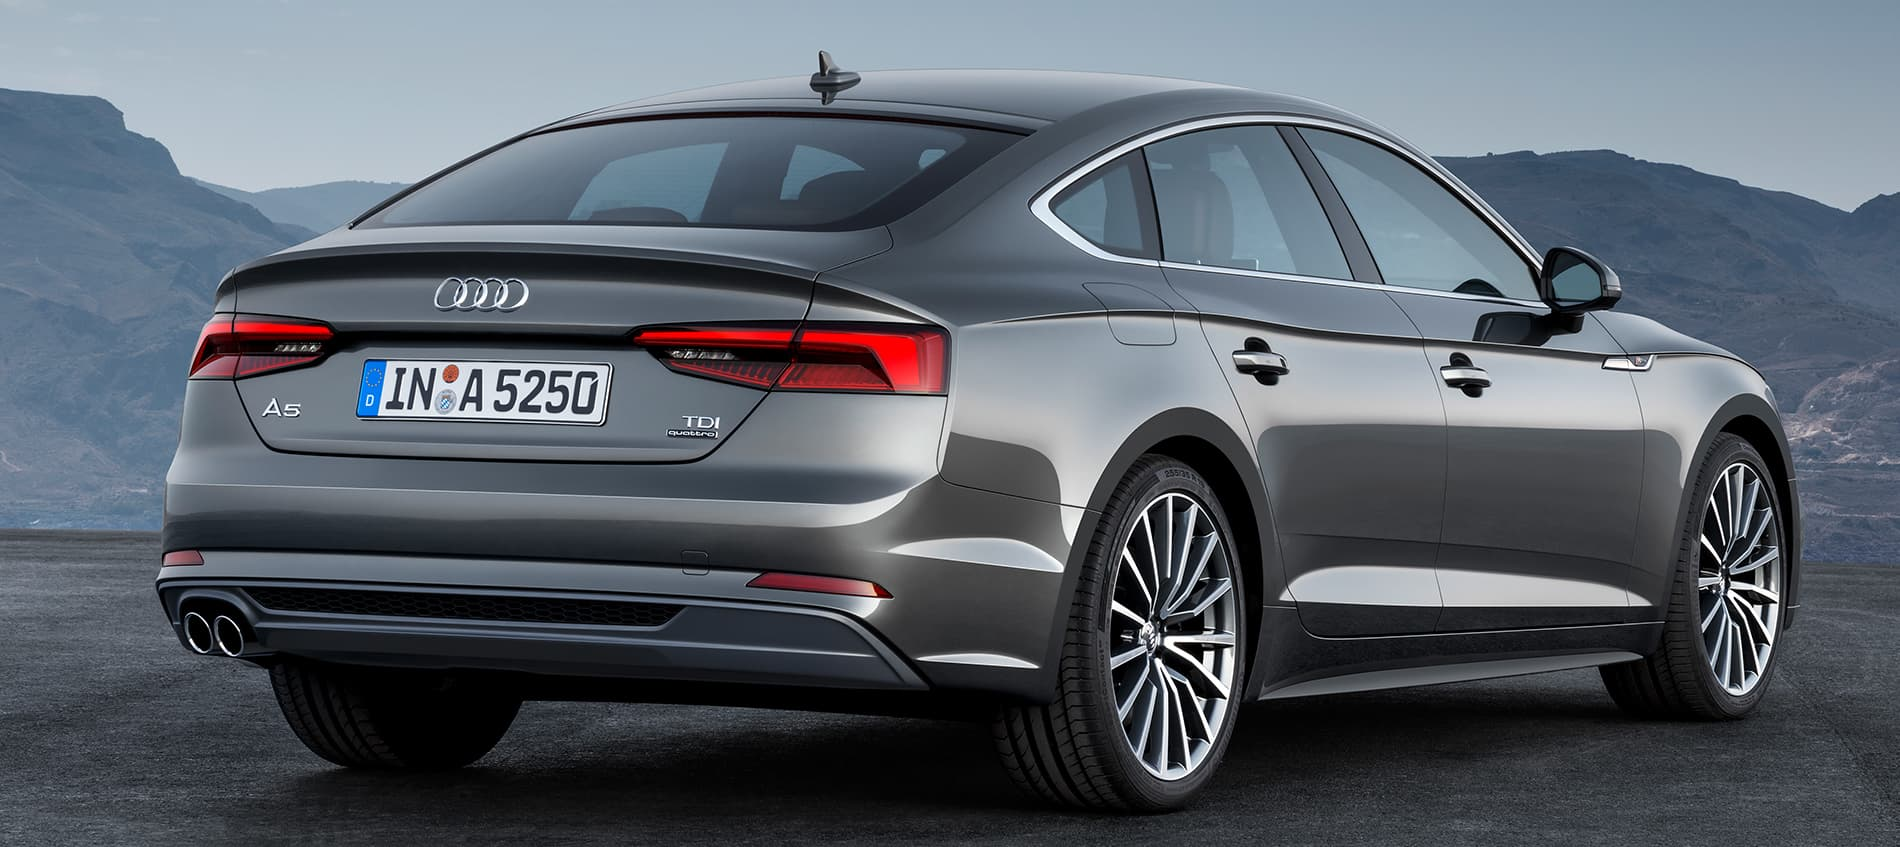 hight resolution of is the new audi a5 worth the rs 7 25 million pricetag